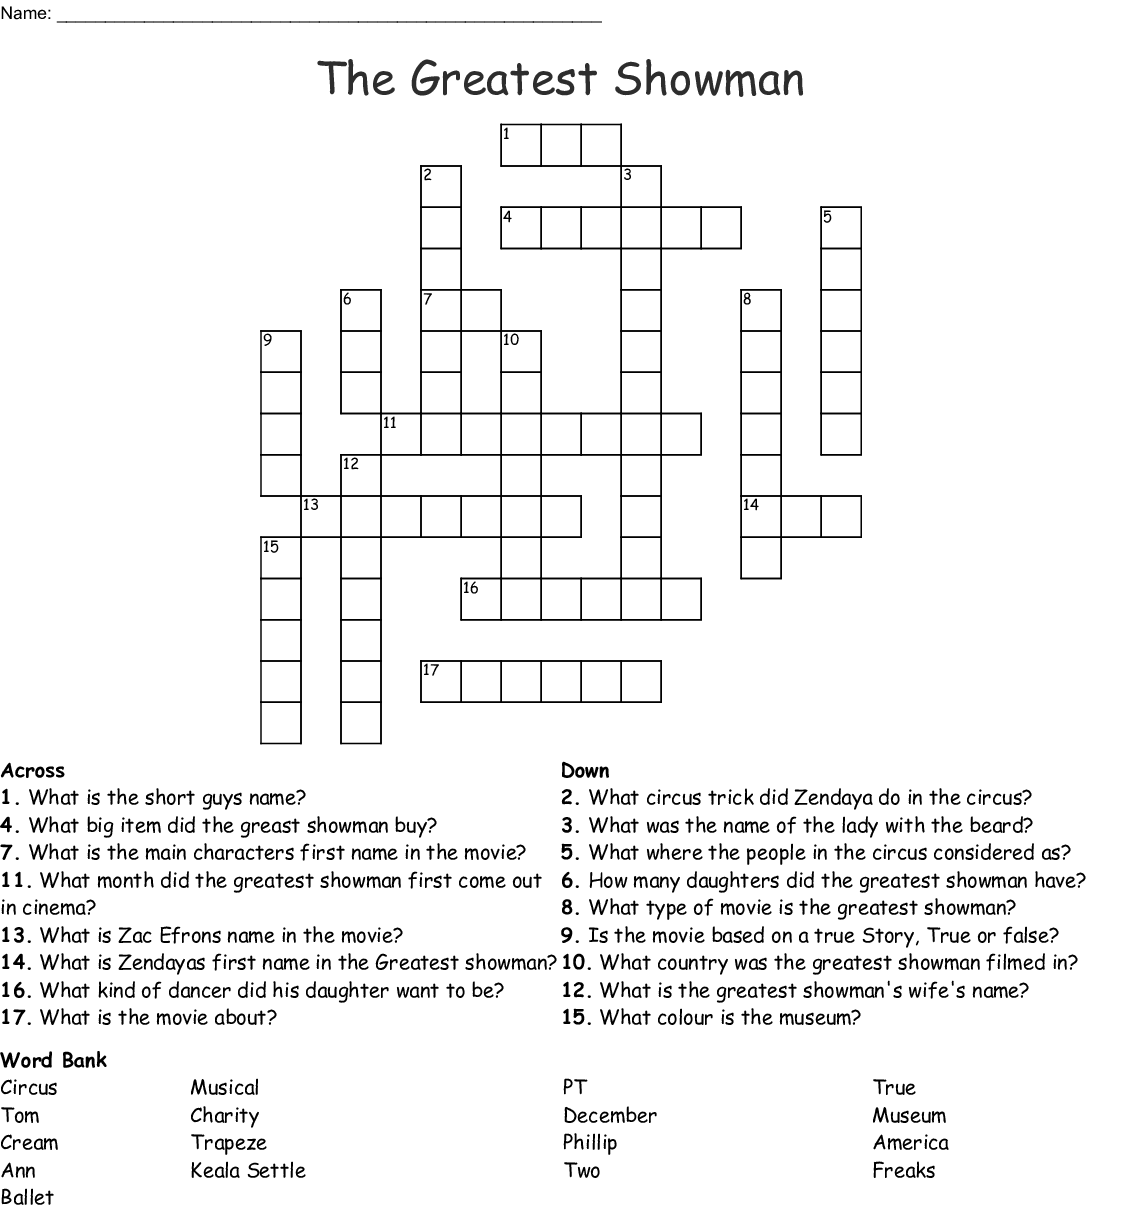 The Greatest Showman Word Search